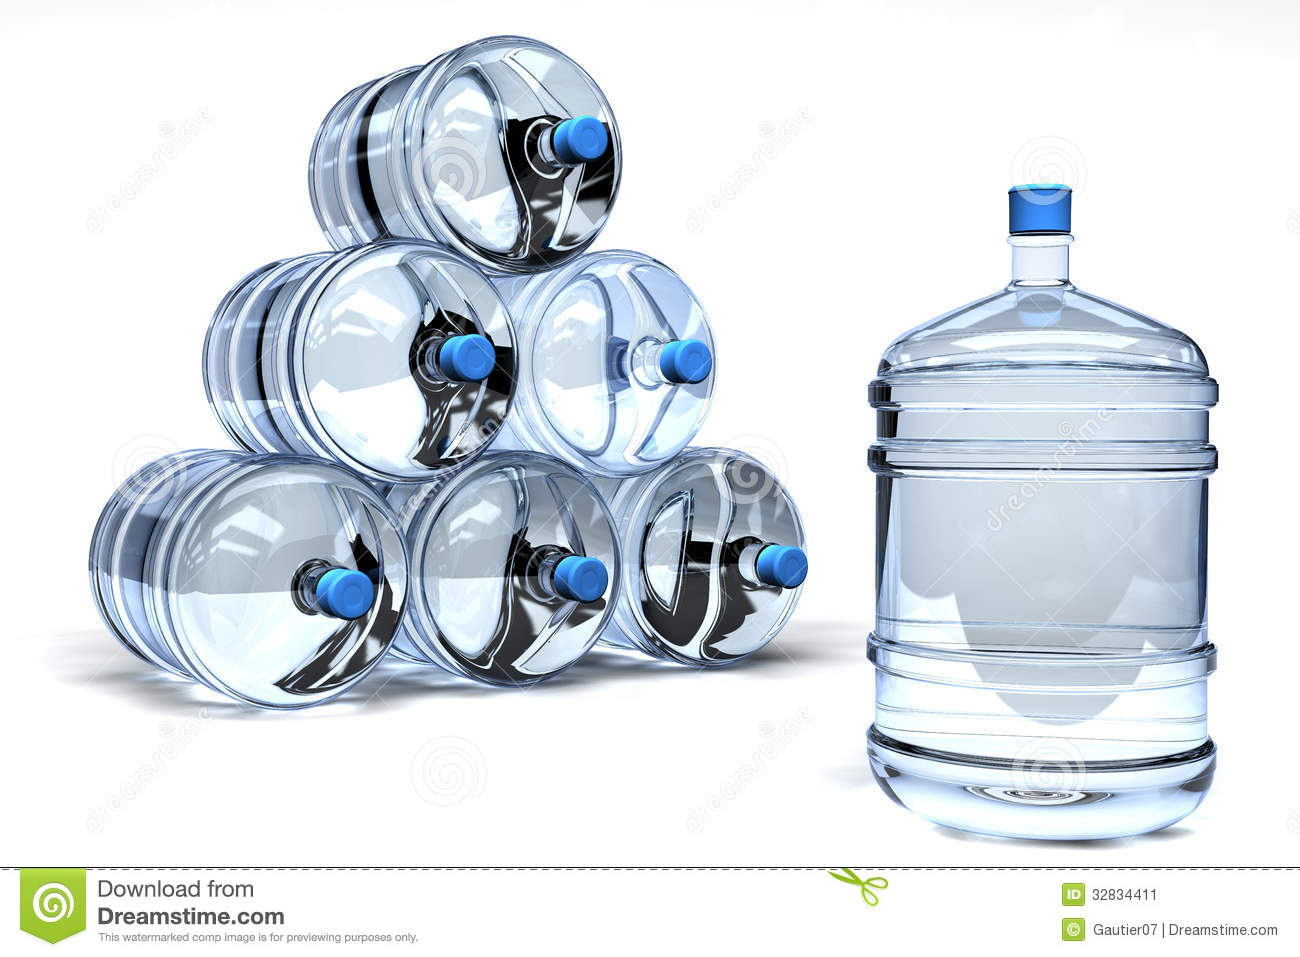 Mineral water containers stock illustration. Image of bulk ...